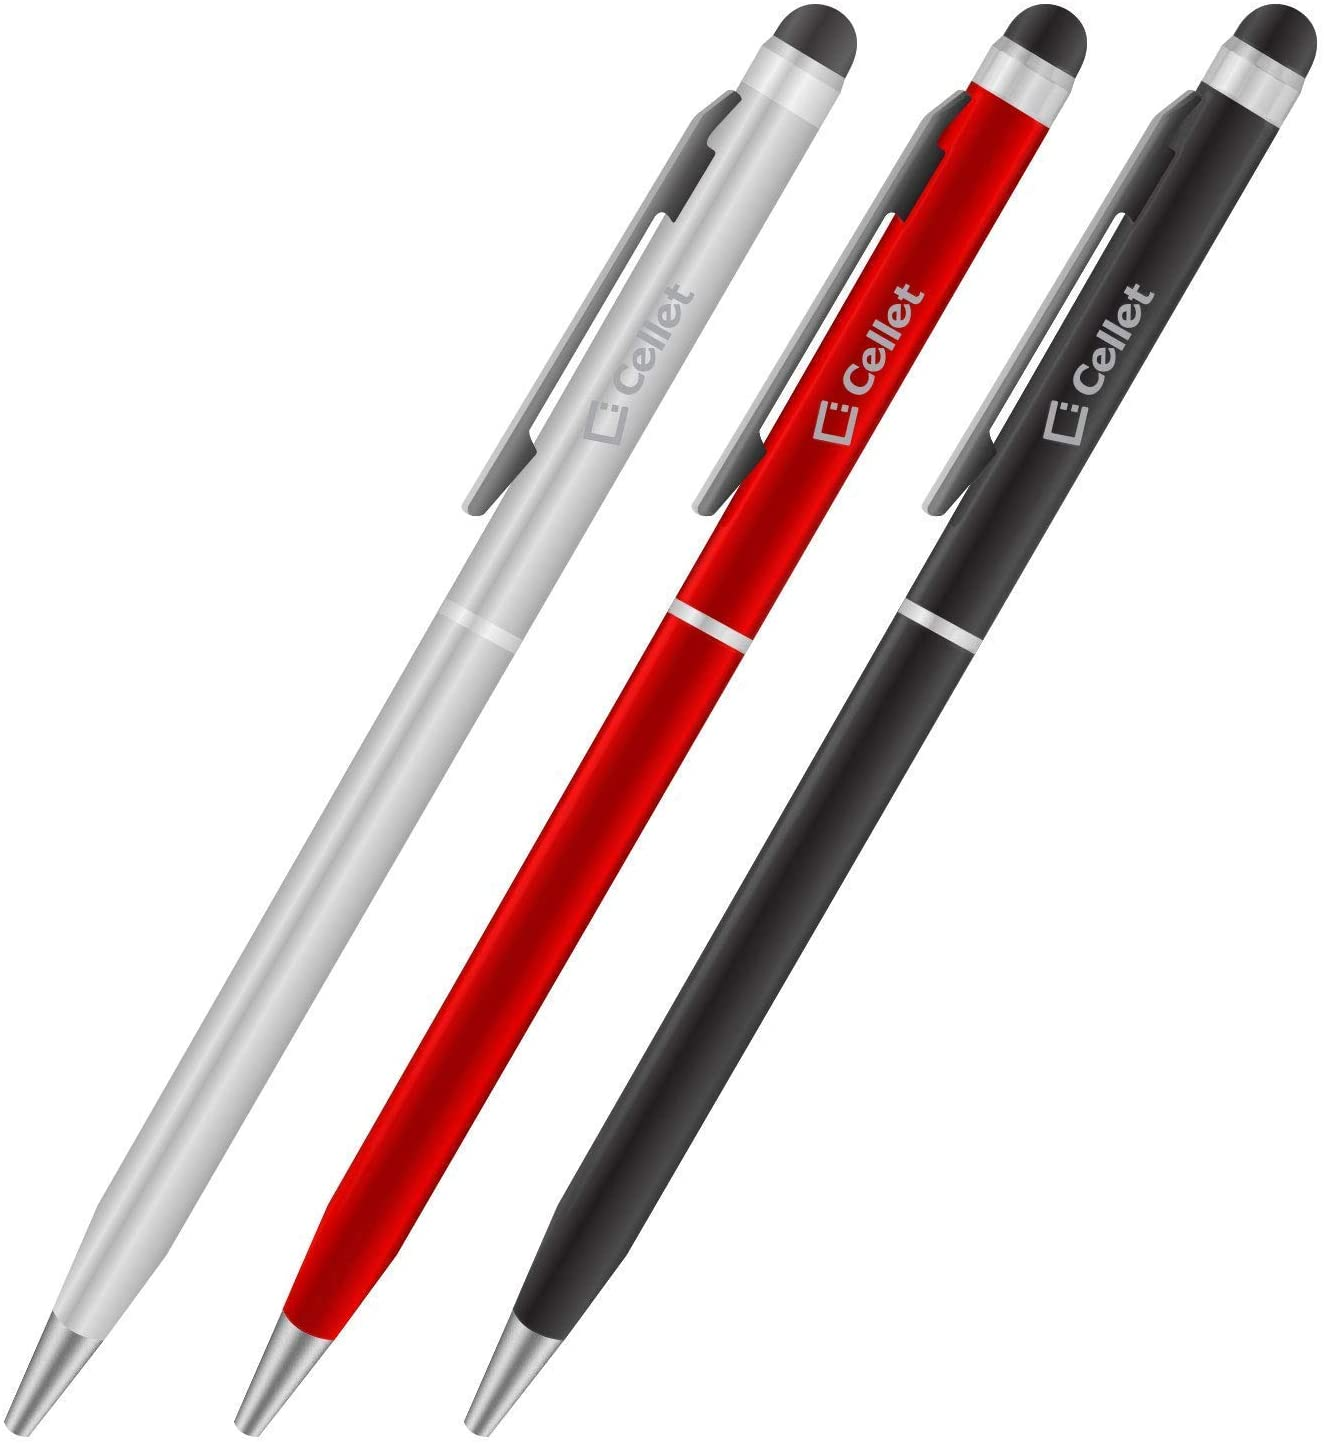 3 Pack-Black-Red-Silver High Accuracy Extra Sensitive PRO Stylus Pen for Motorola Edge Plus with Ink Compact Form for Touch Screens